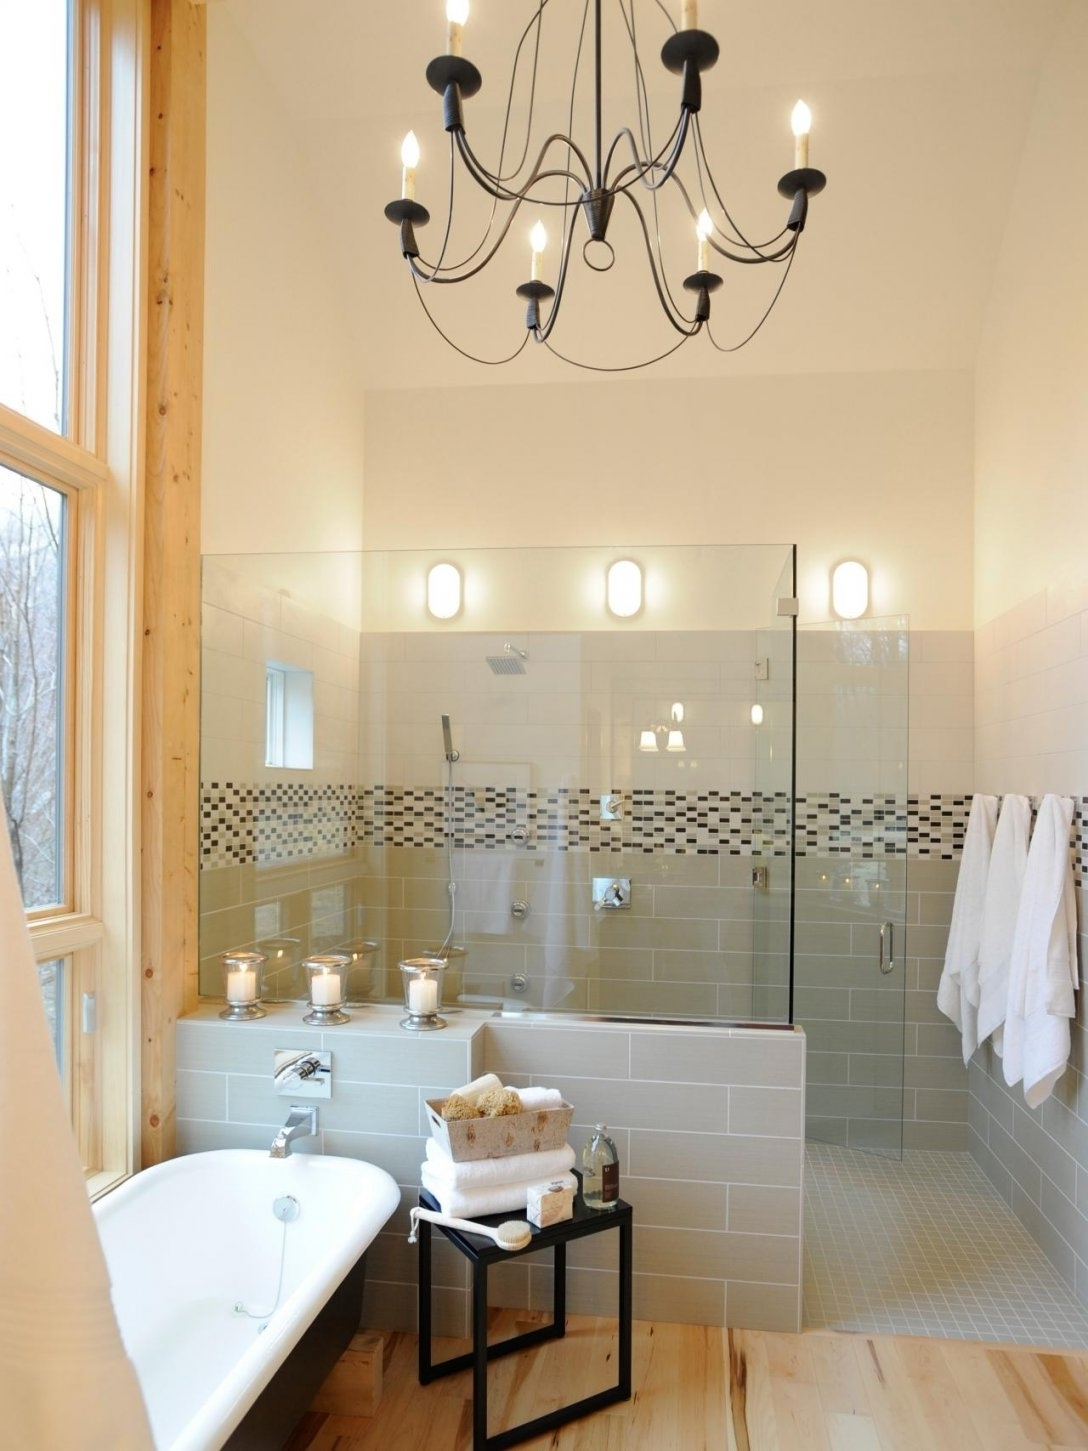 Home Design & Decorating Ideas (View 6 of 15)